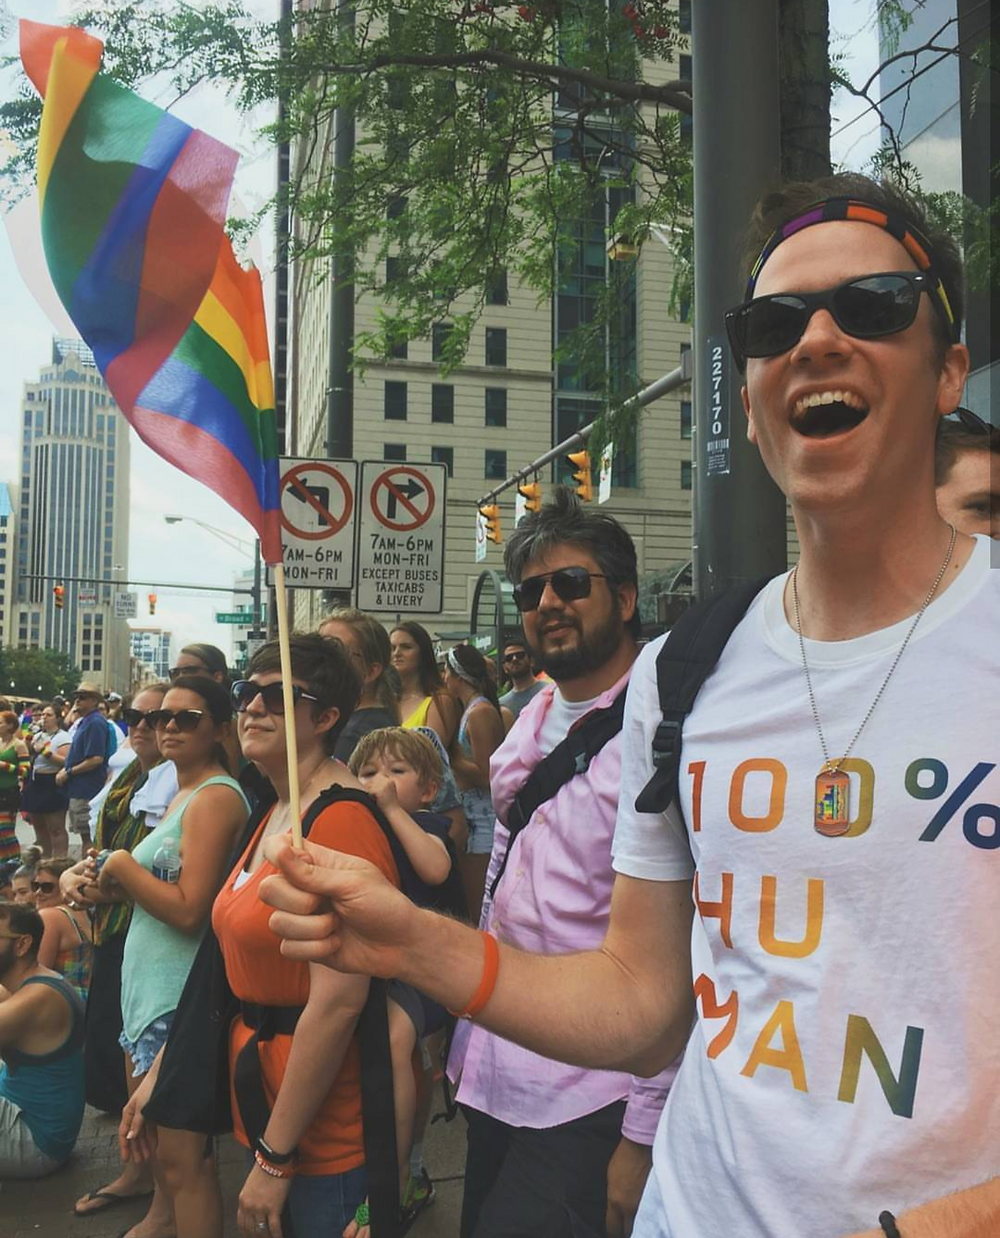 gay man with rainbow flag at lgbt pride parade